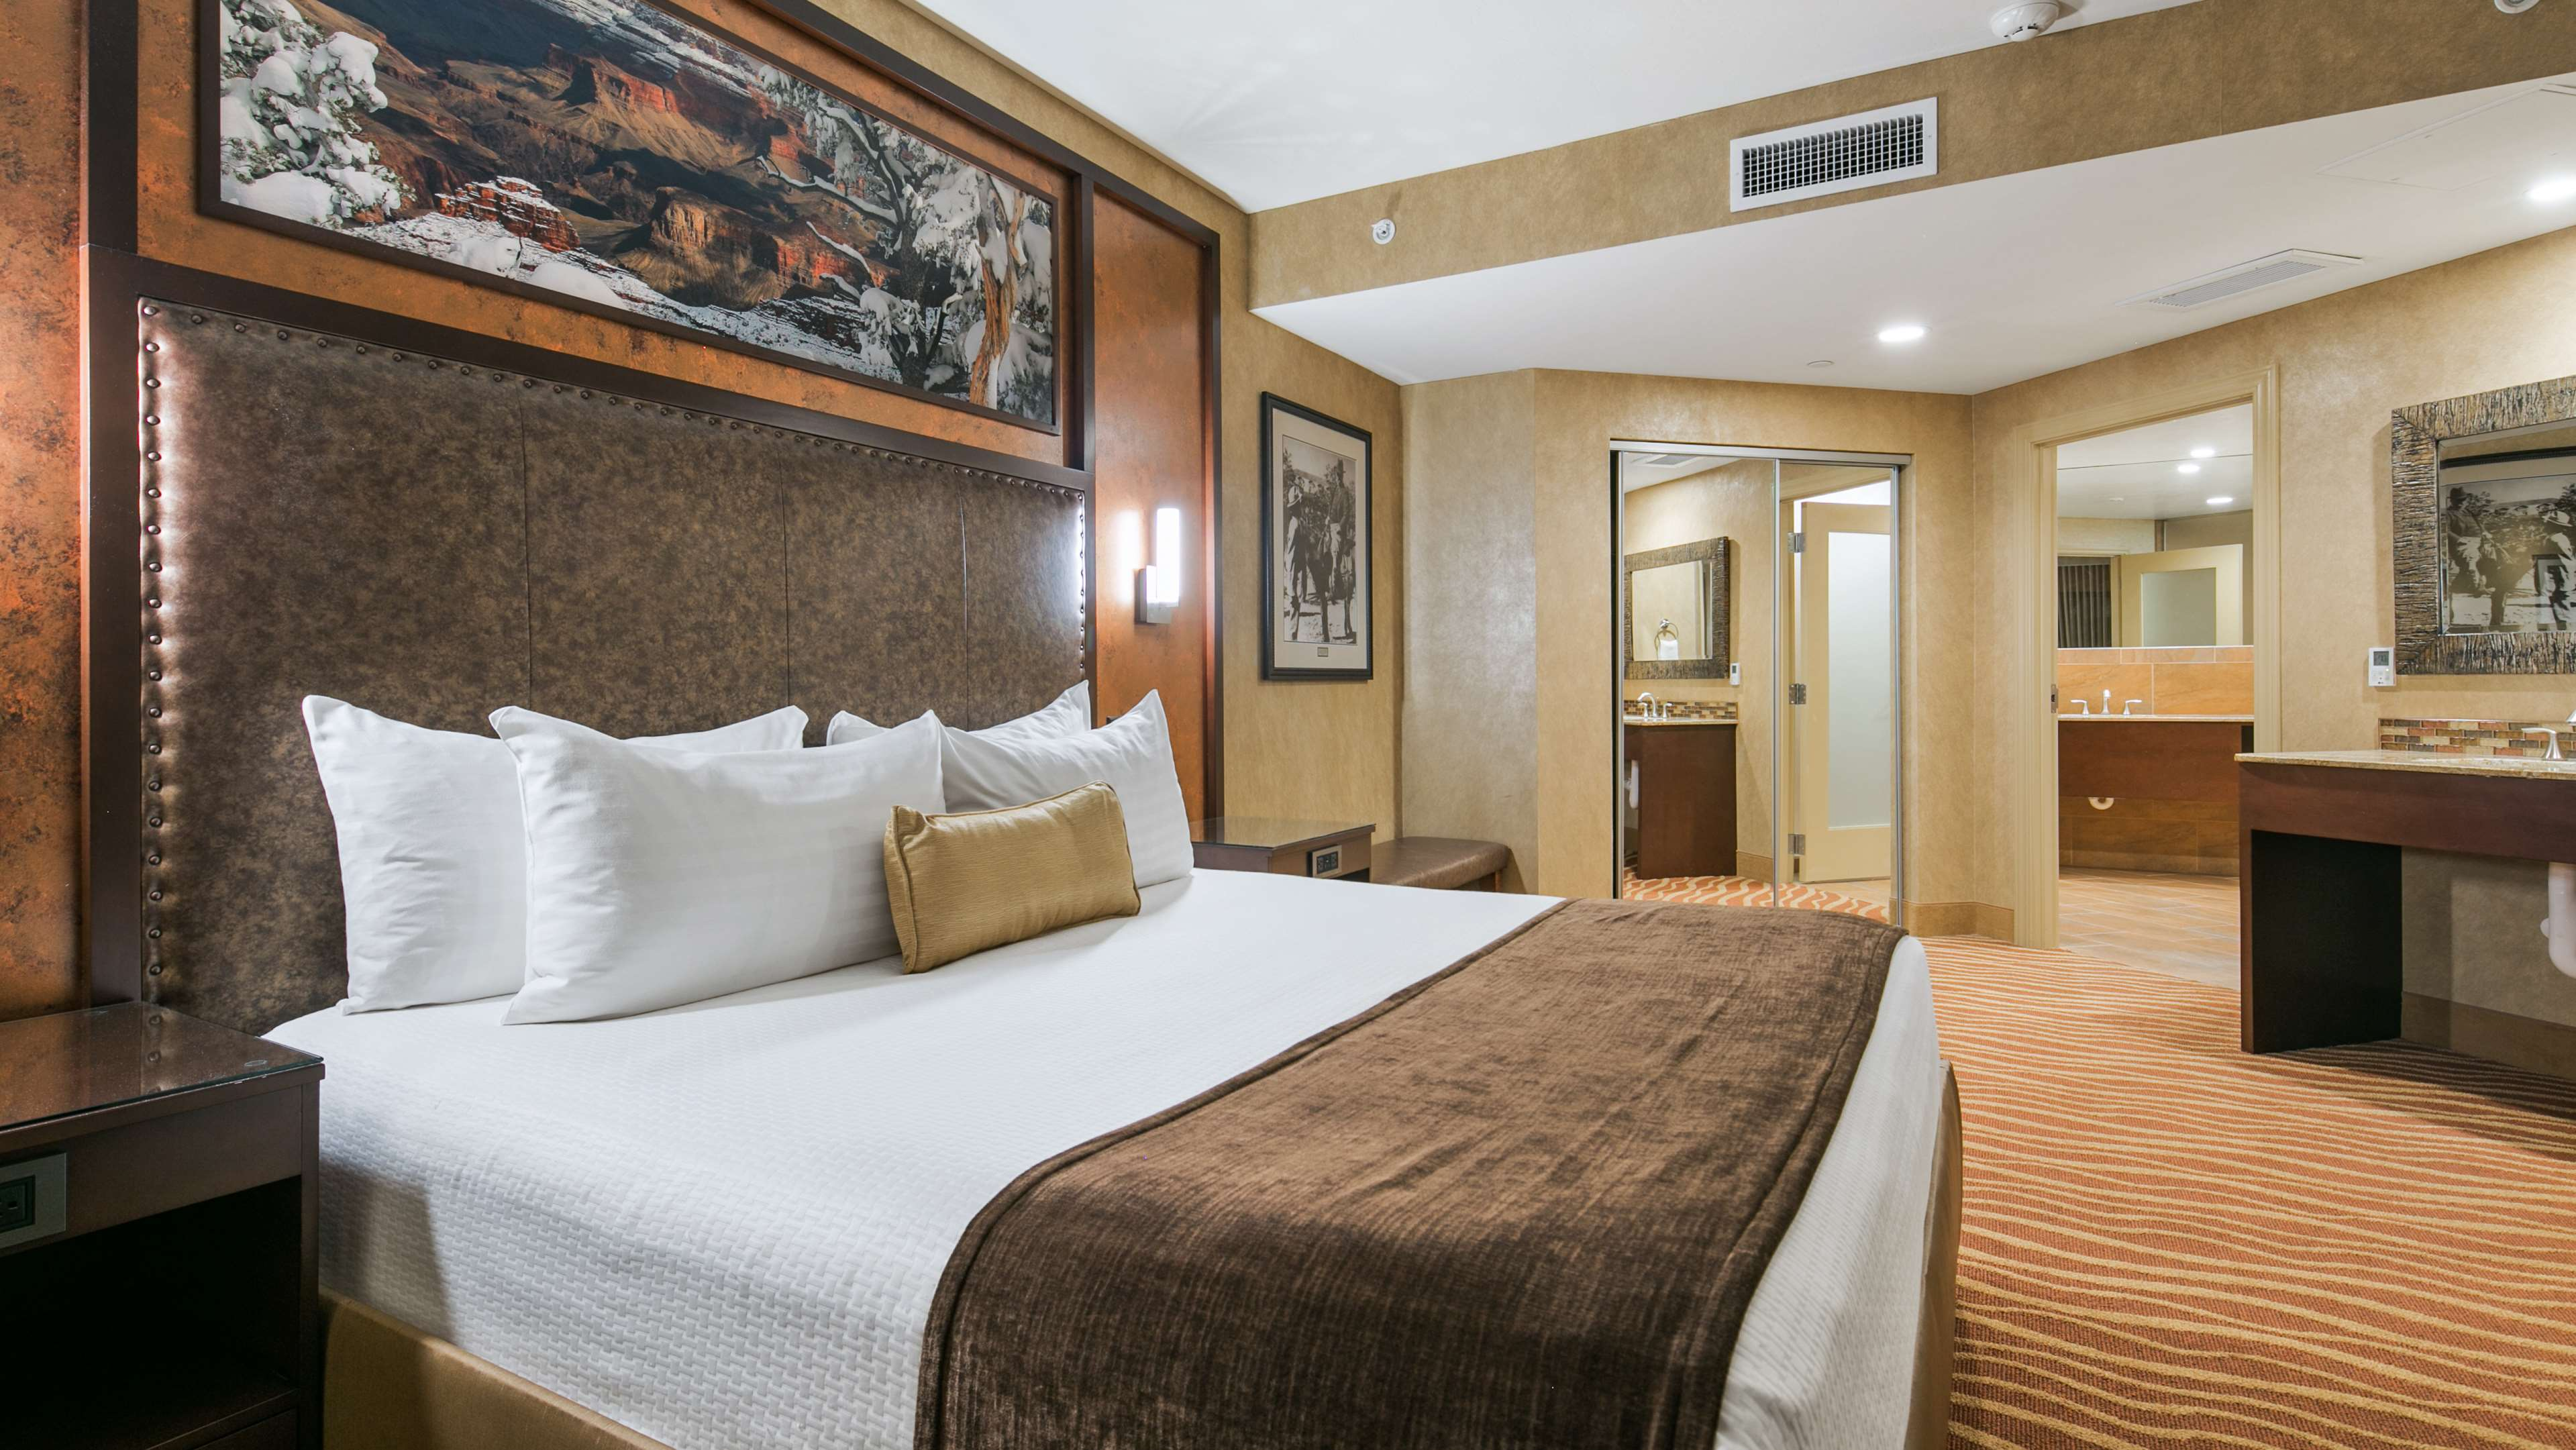 Best Western Premier Grand Canyon Squire Inn image 12